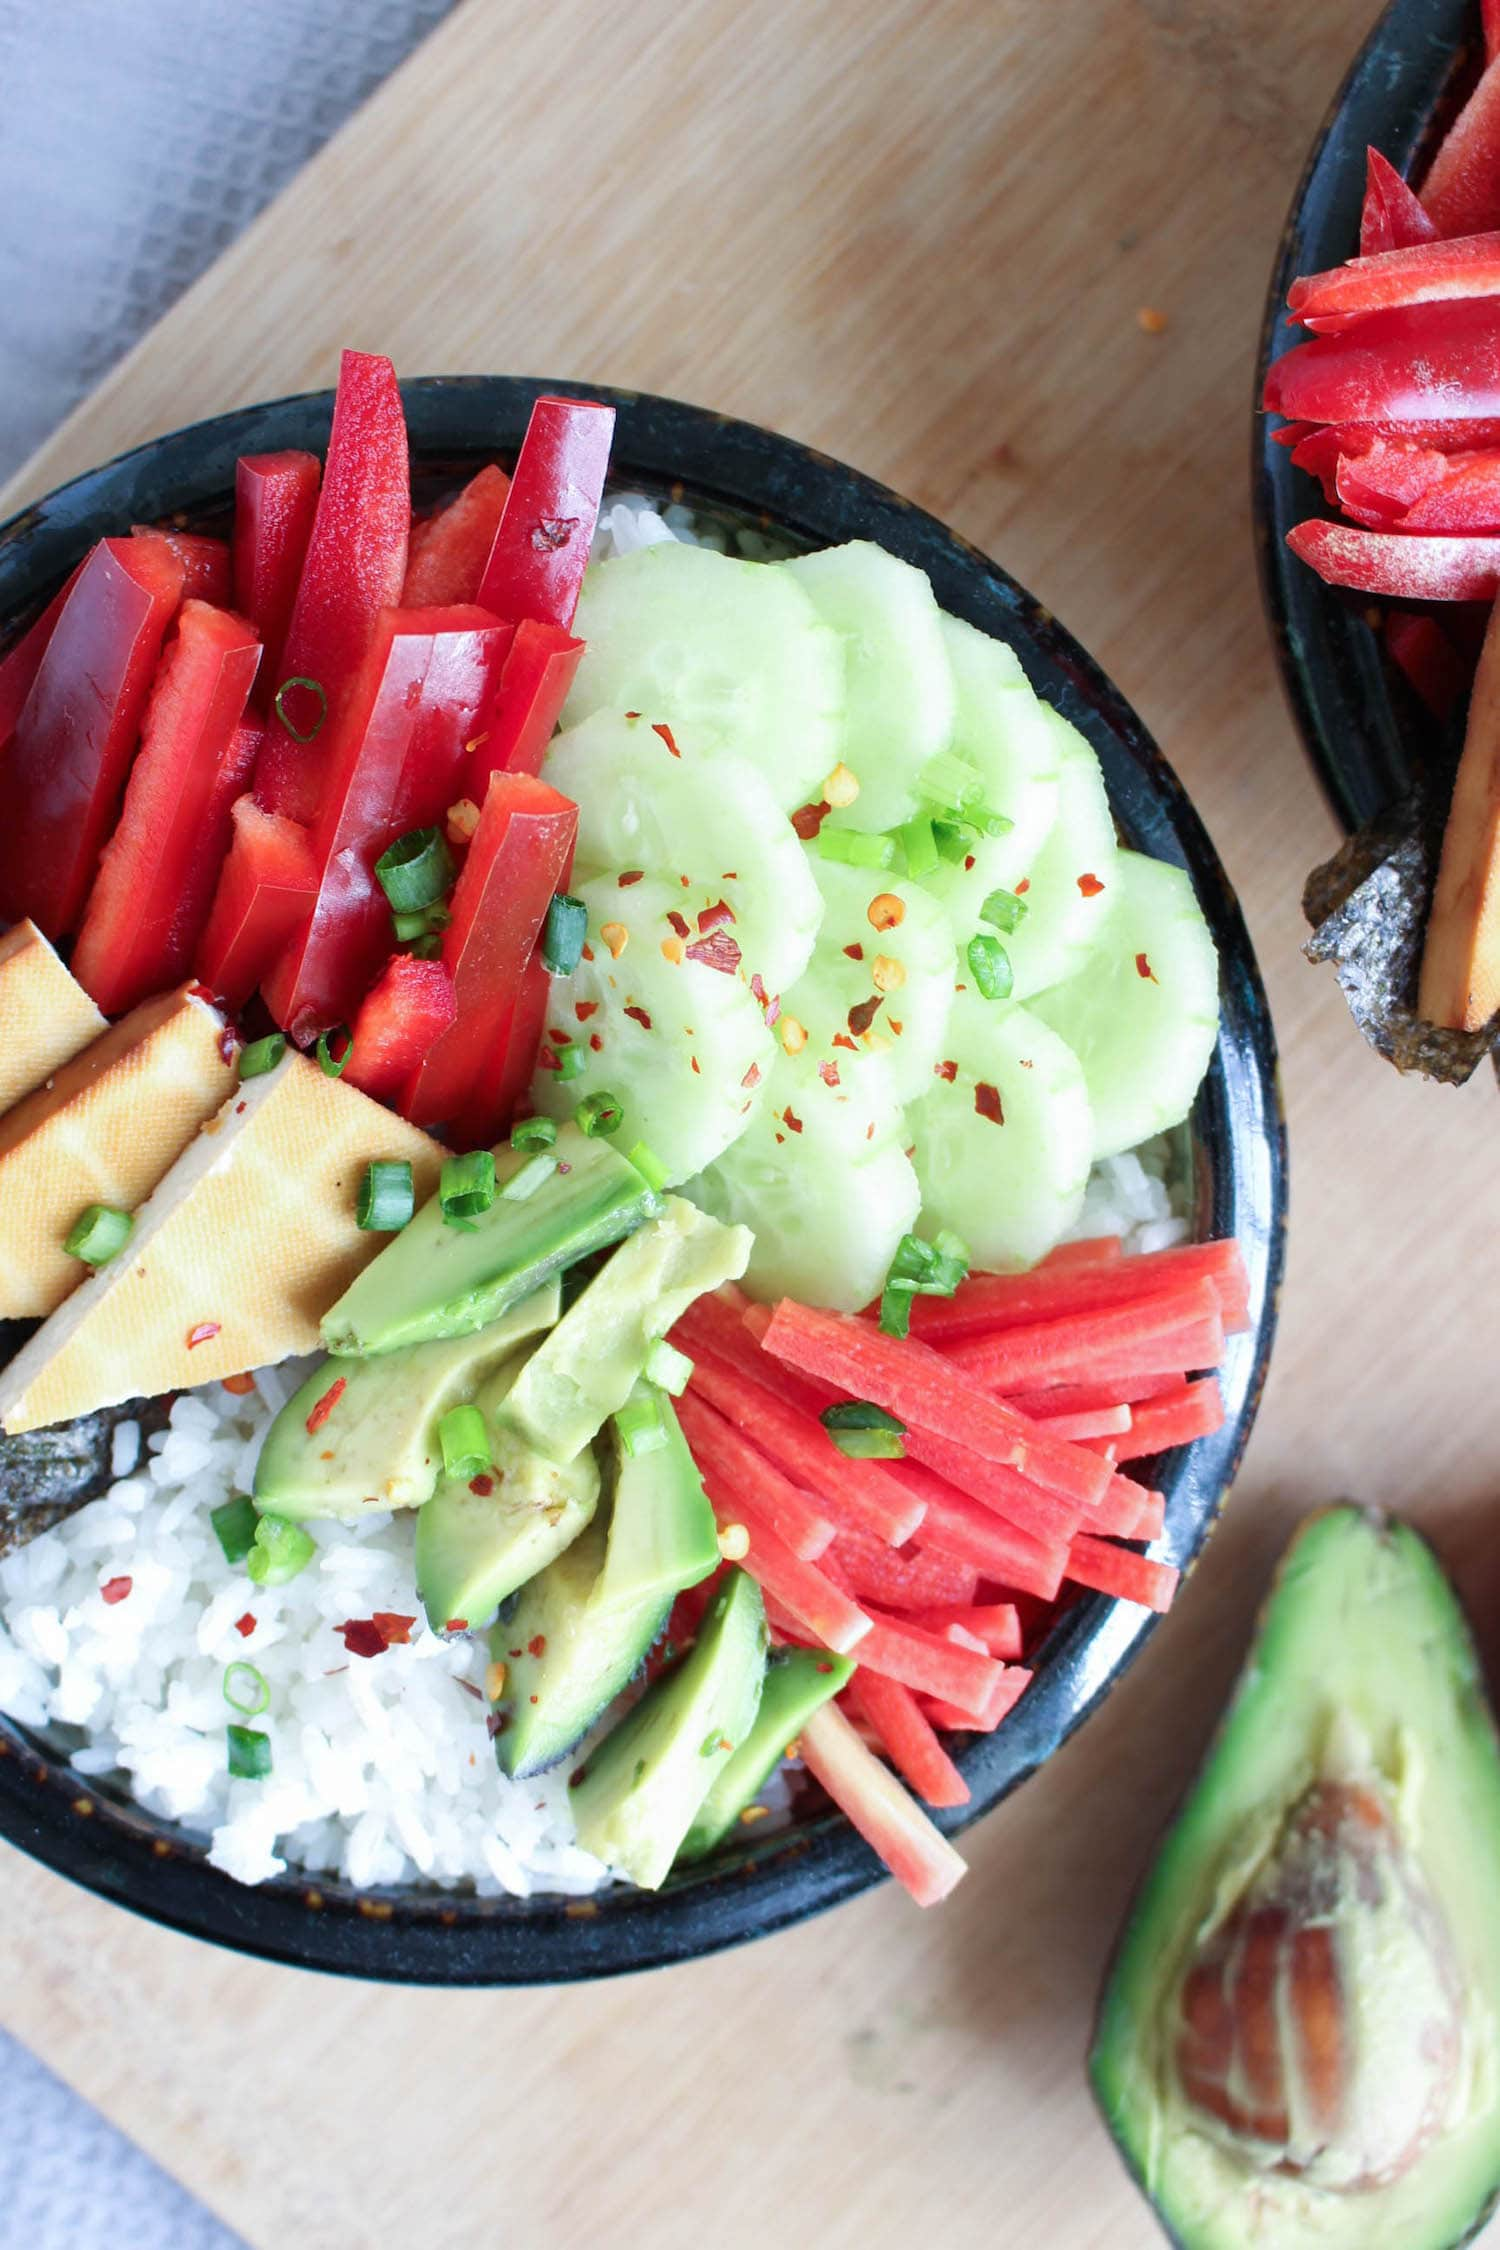 Deconstructed Vegan Sushi Bowl | The Conscientious Eater